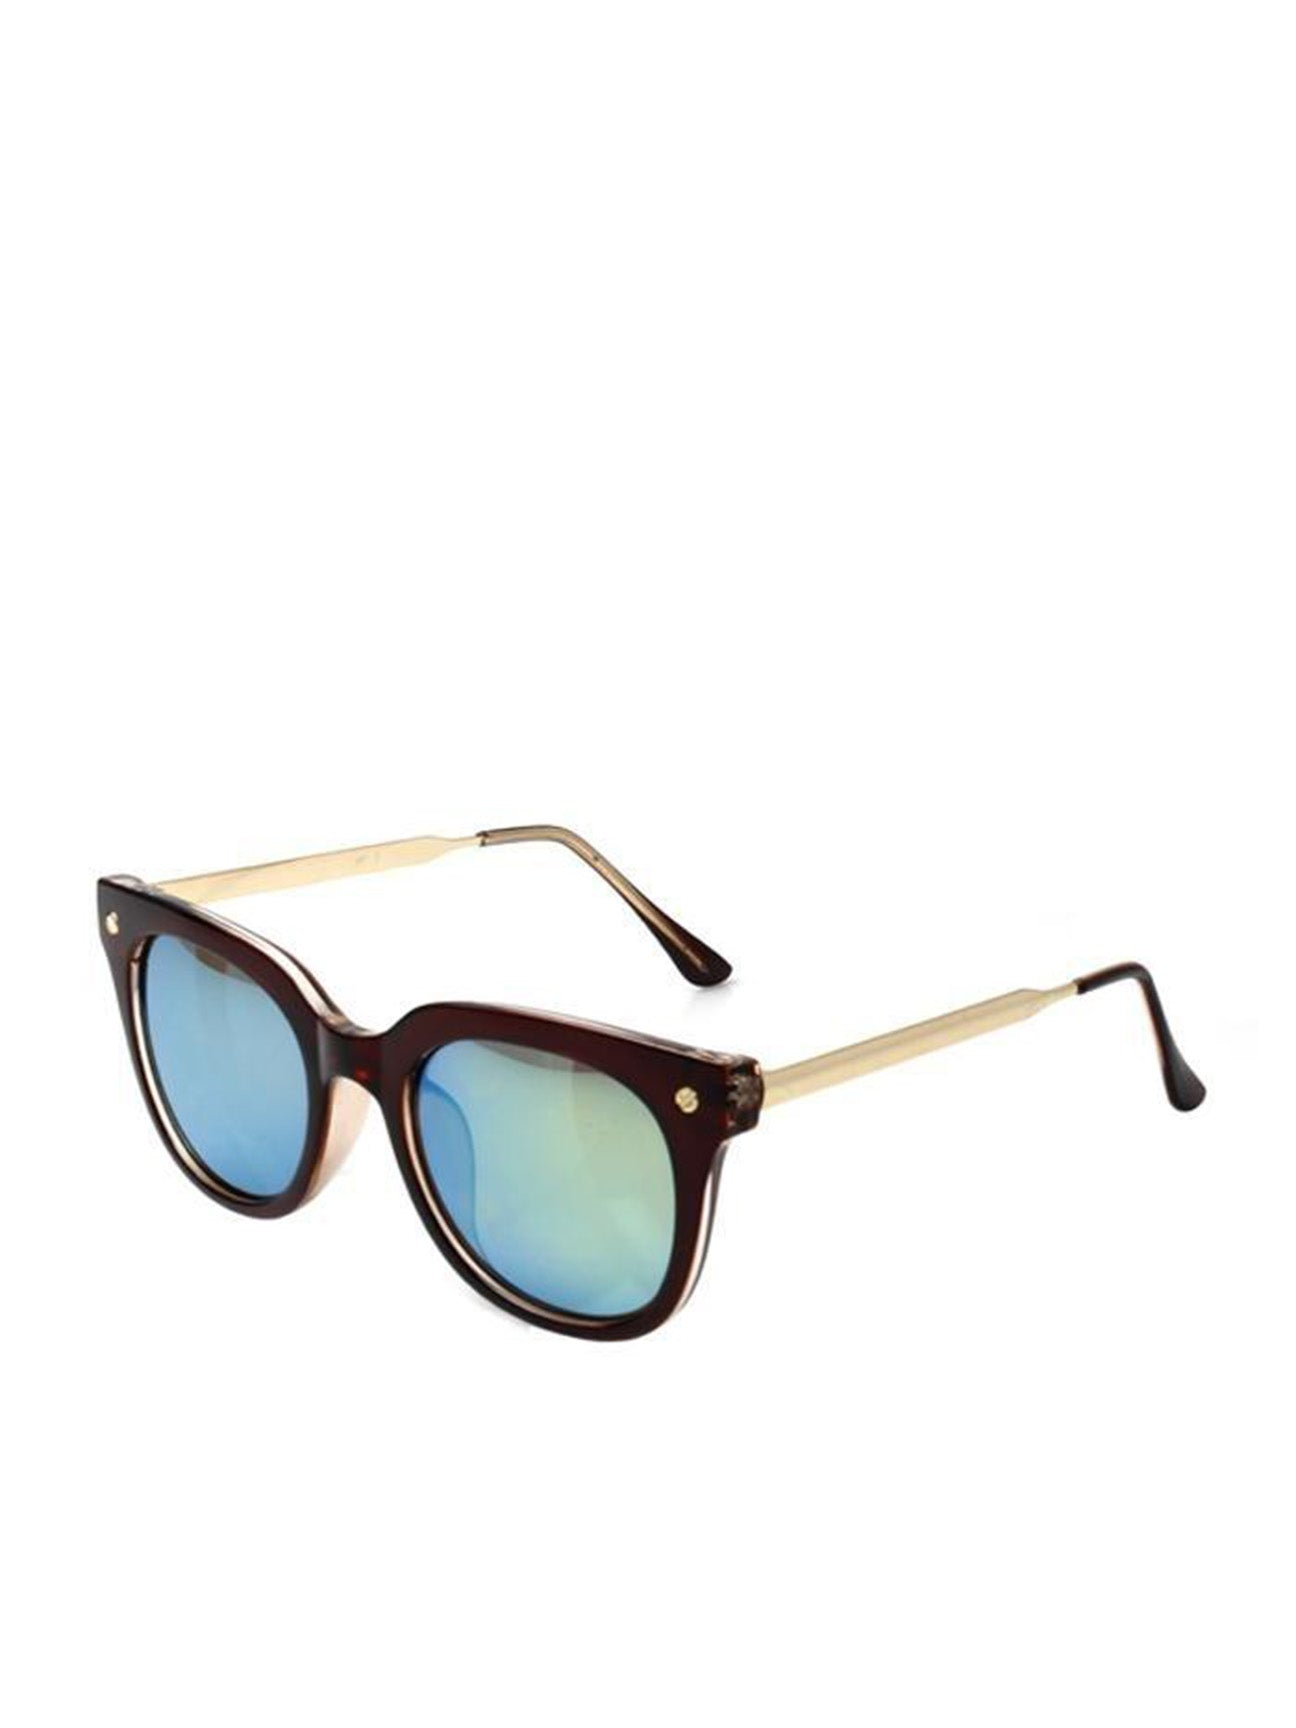 Black Wayfarer With Gold Metal Arms and Blue Revo Lenses